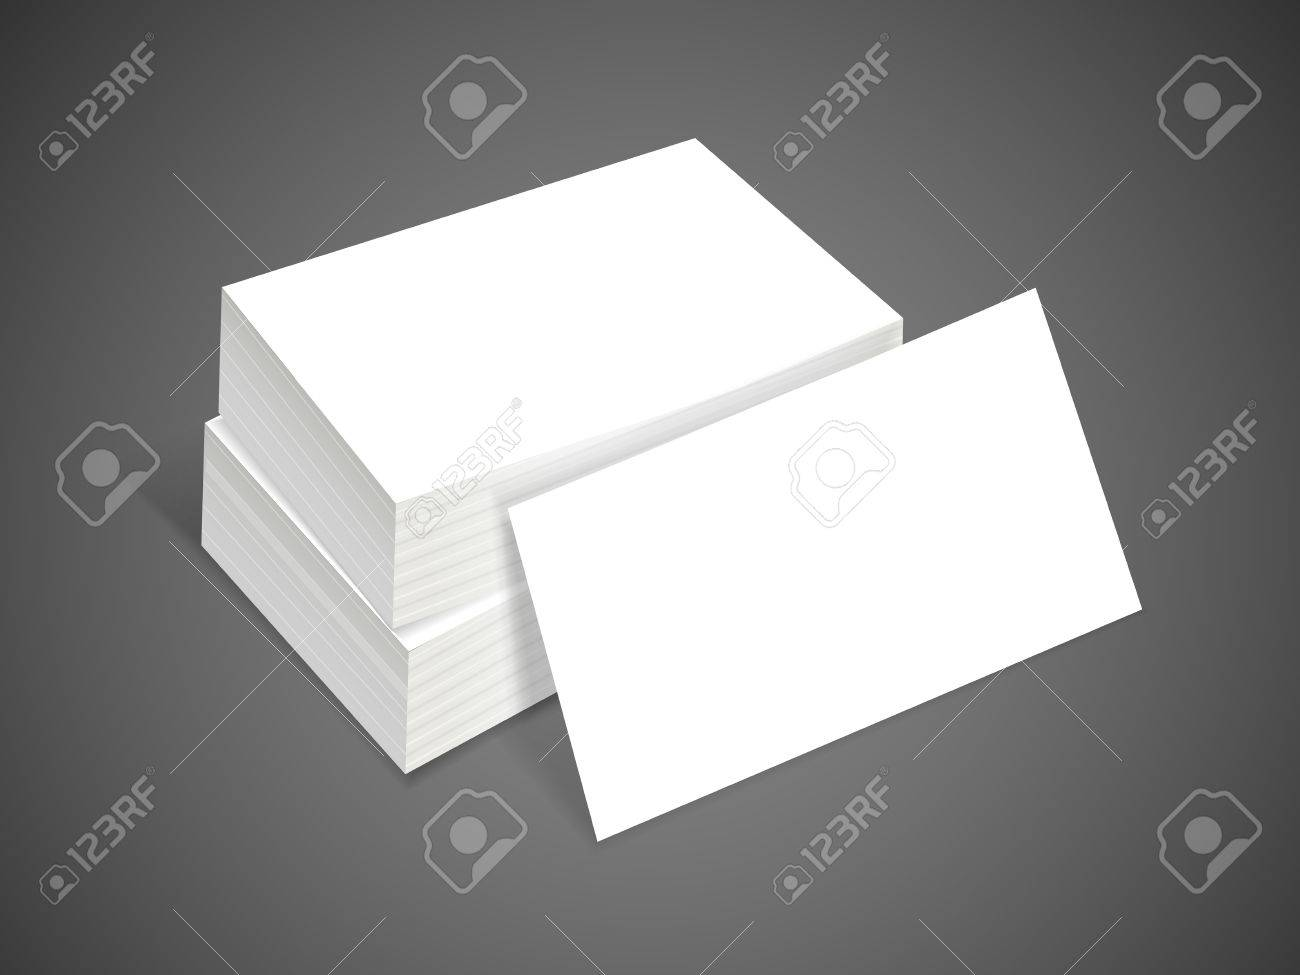 Blank Business Card Isolated On Black Background Royalty Free ...